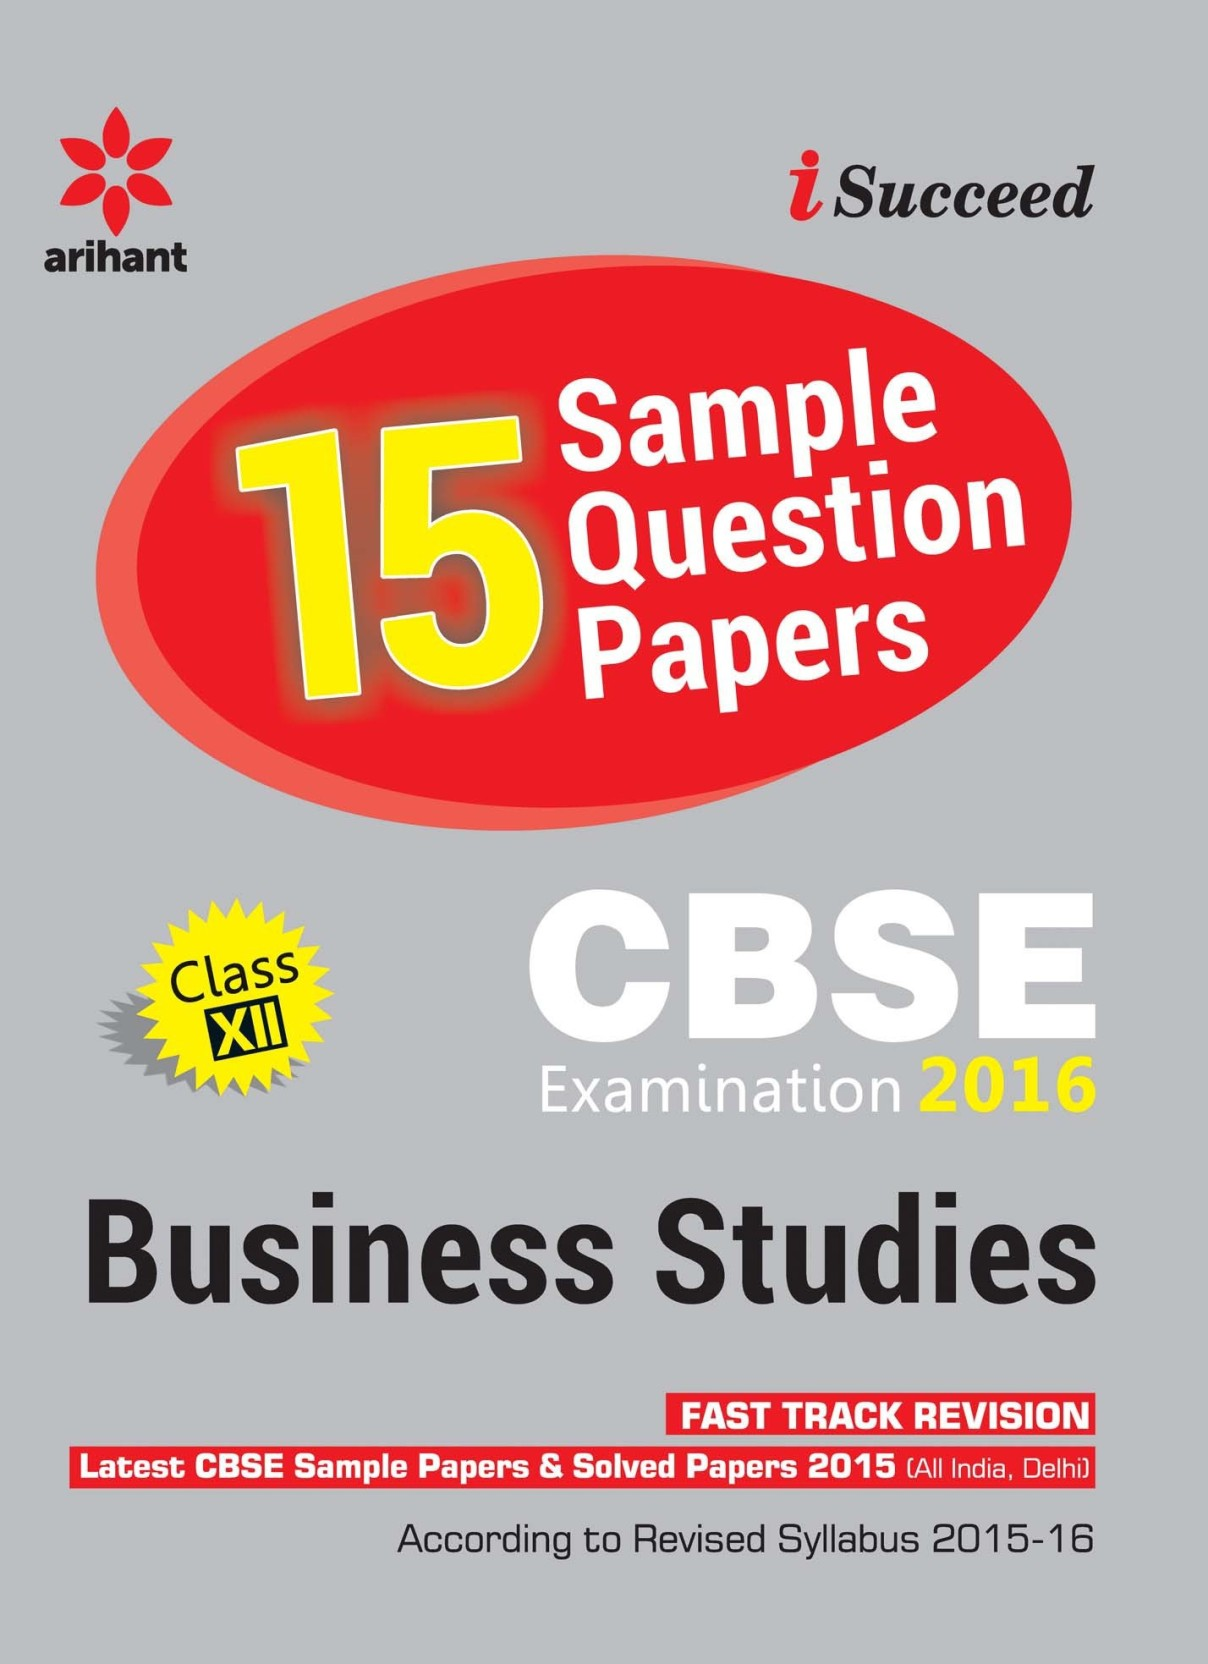 CBSE 15 Sample Paper BUSINESS STUDIES for Class 12th 4 Edition: Buy